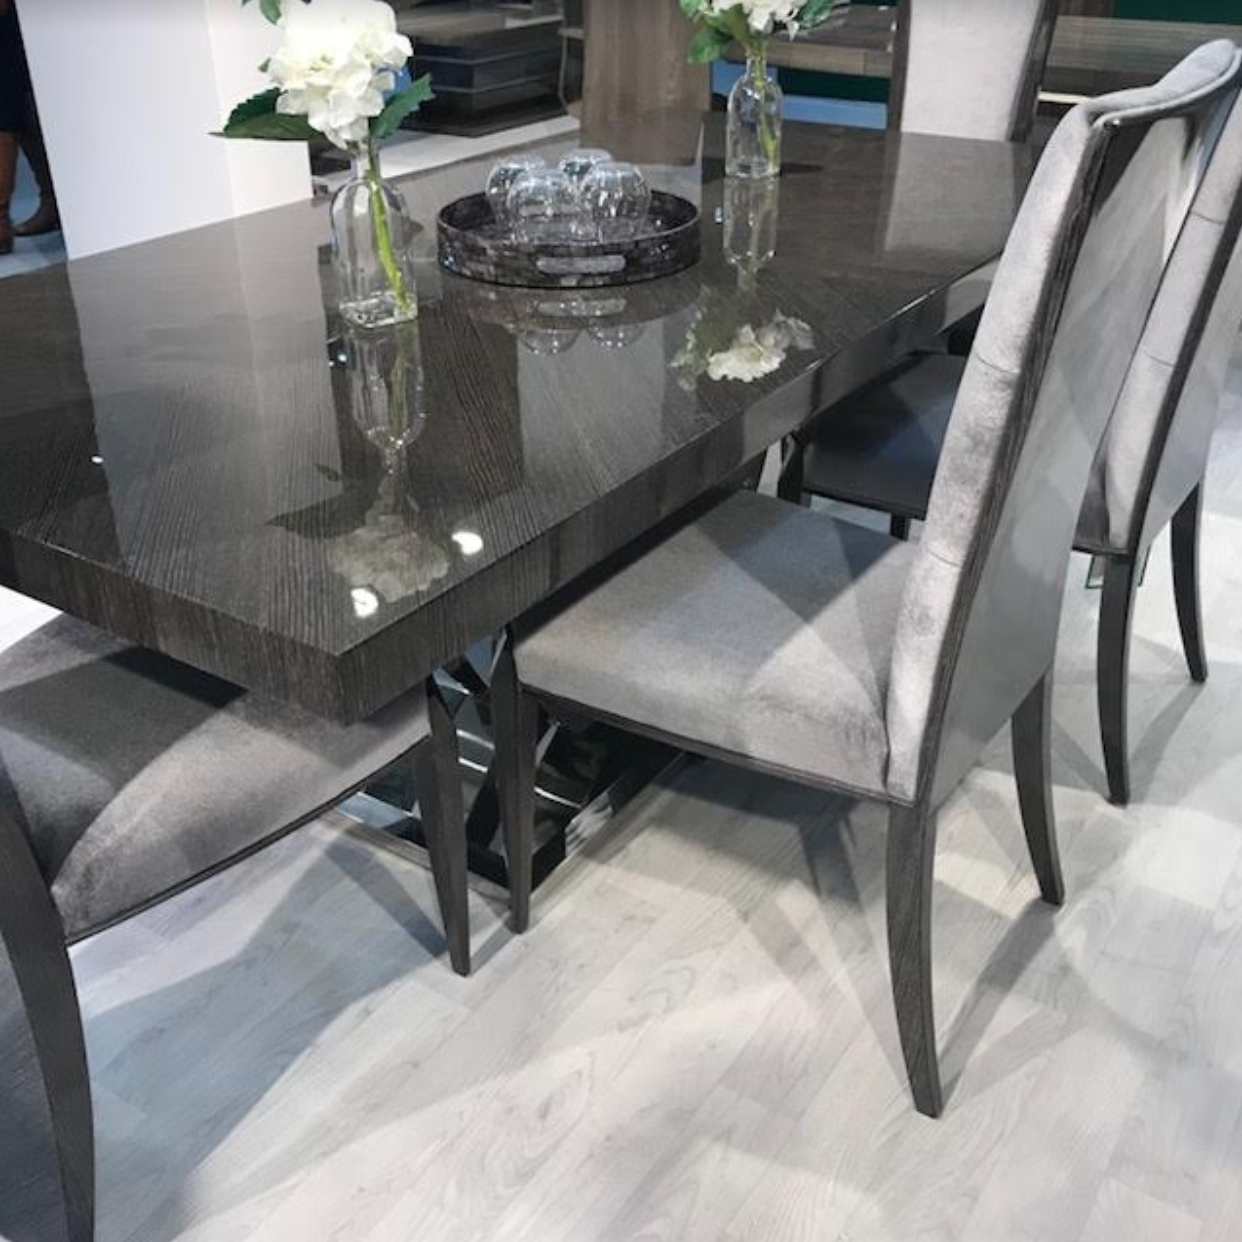 High Gloss Dining Table With Chrome Base For Latest High Gloss Dining Tables (Gallery 10 of 25)